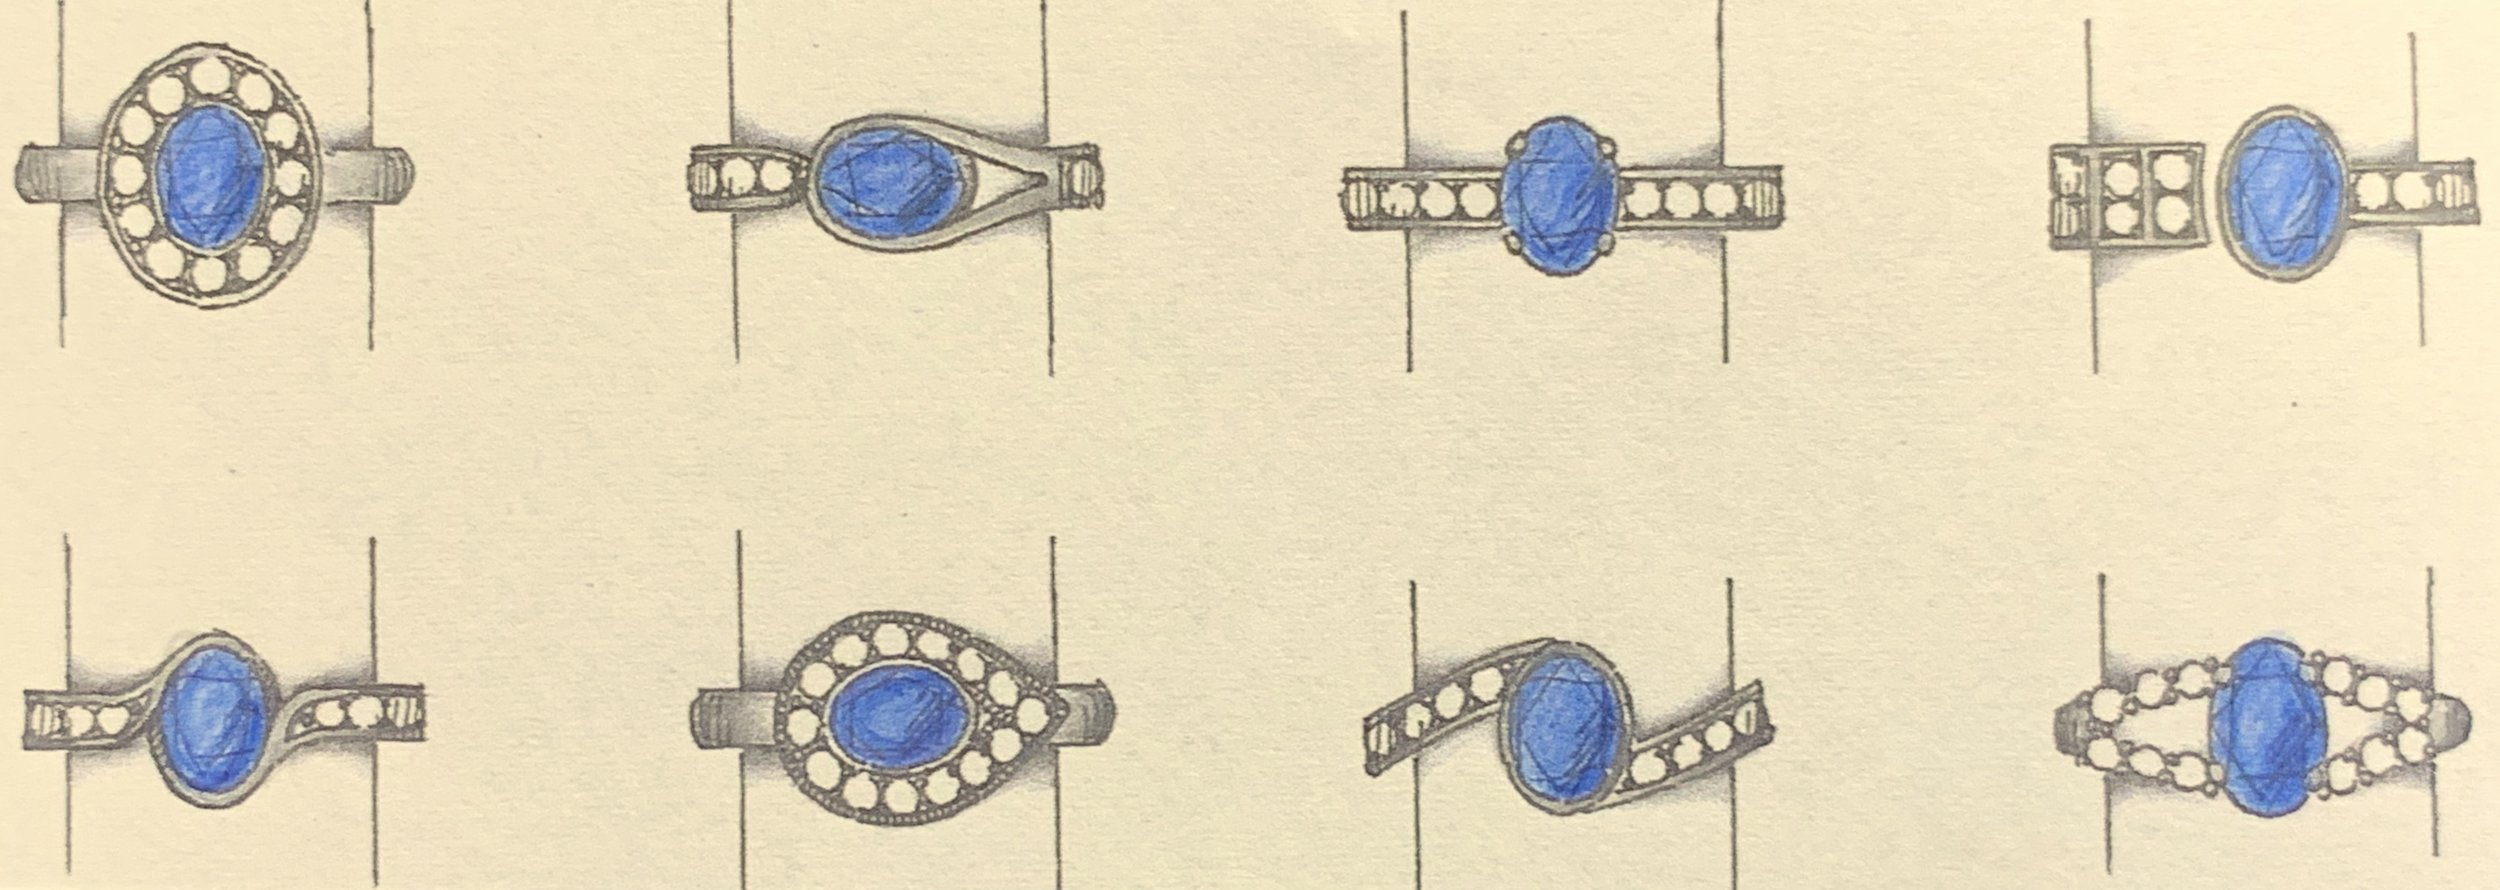 New ideas for stones removed from an old ring.